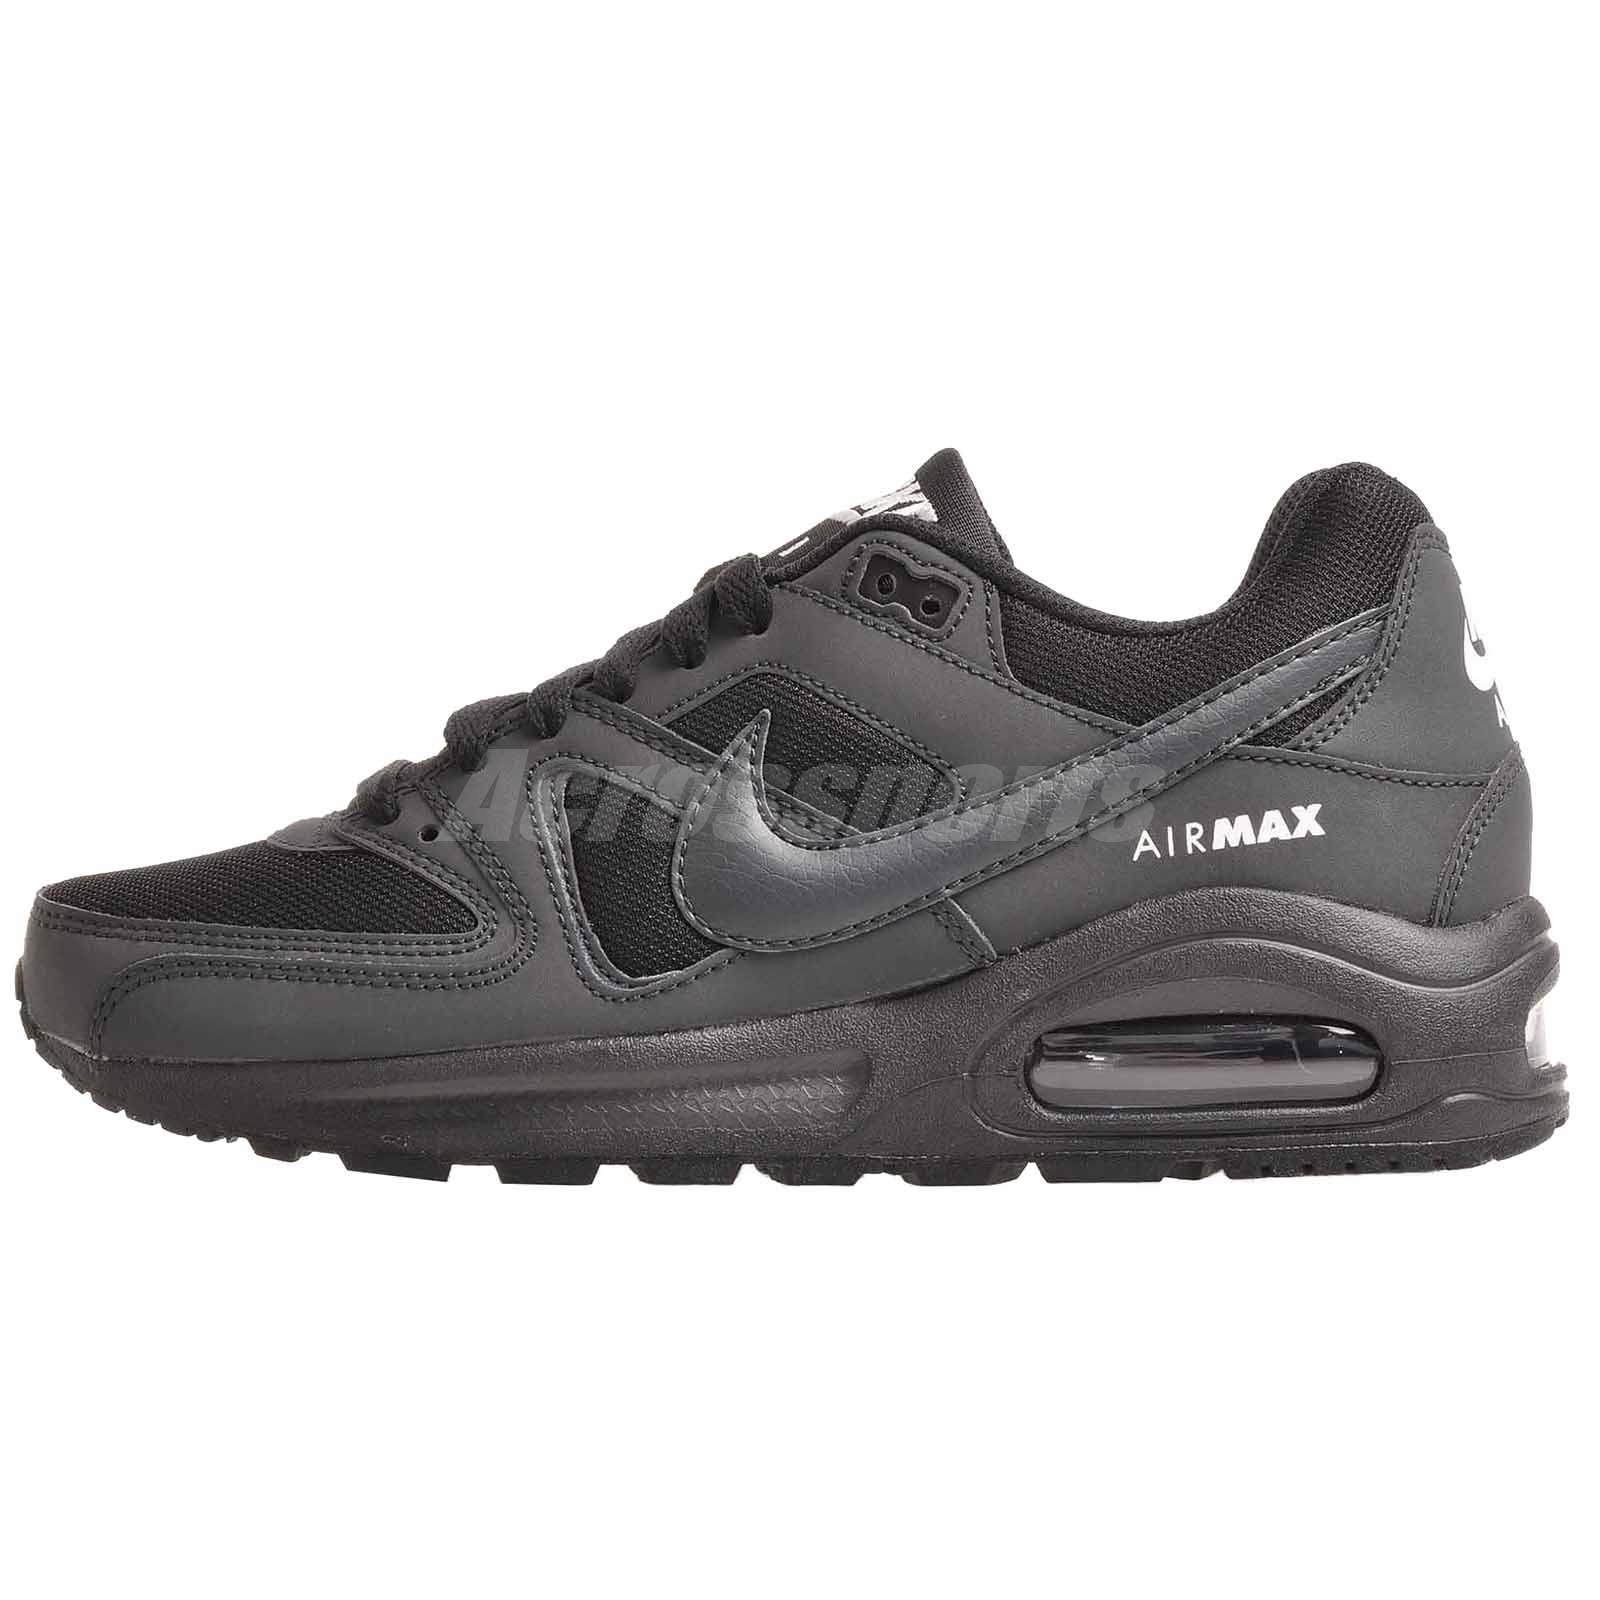 76a2f1ce6d Nike Air Max Command Flex (GS) Running Kids Shoes Black 844346-002 ...